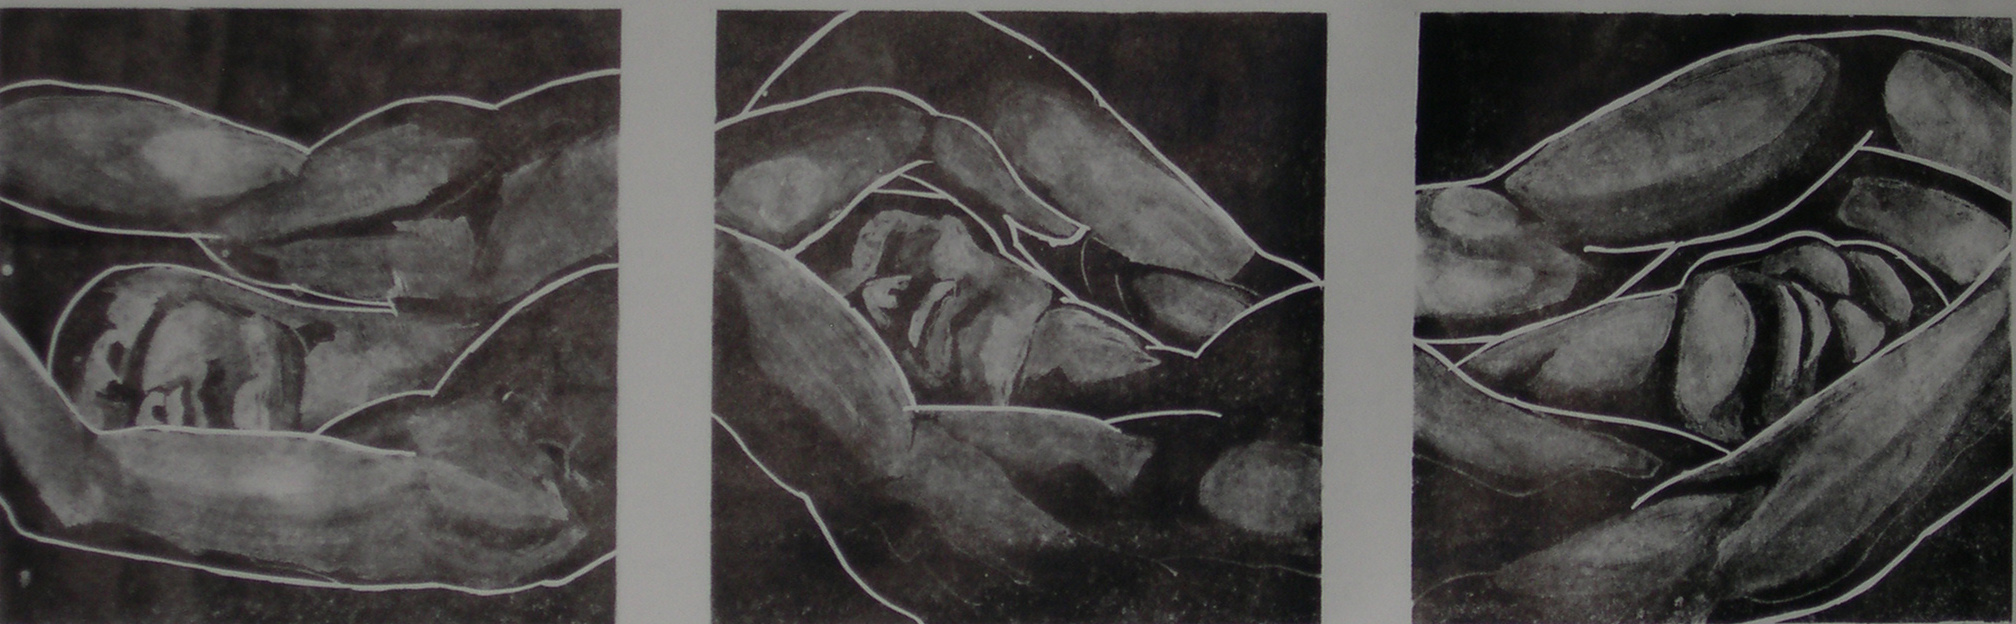 %223 Small Black Sleepers%22 lithograph  28x91cm